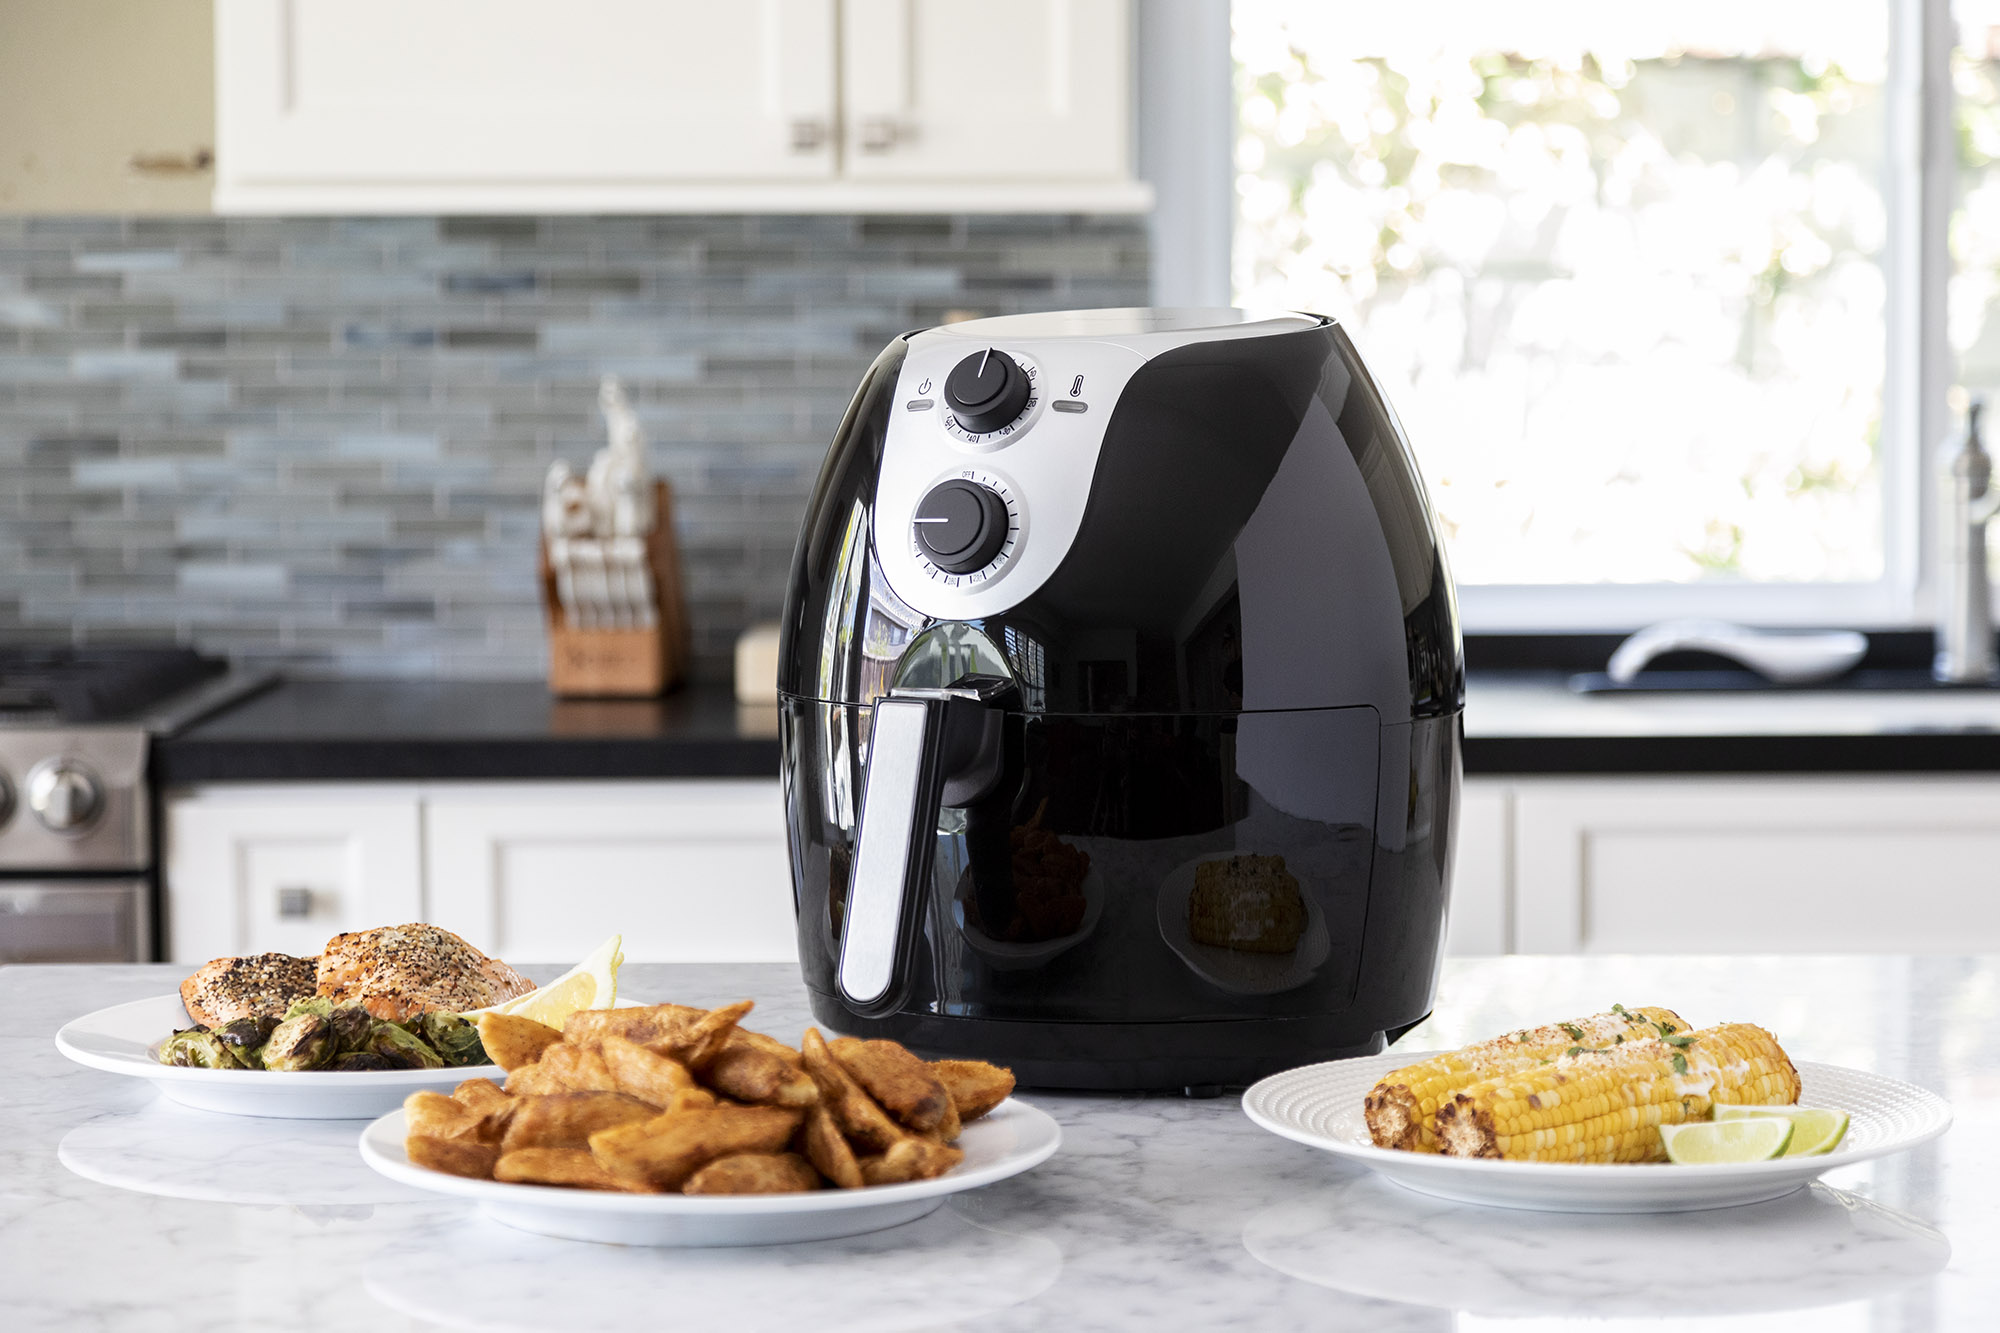 Magic Chef Partners With Newair Appliances To Launch New